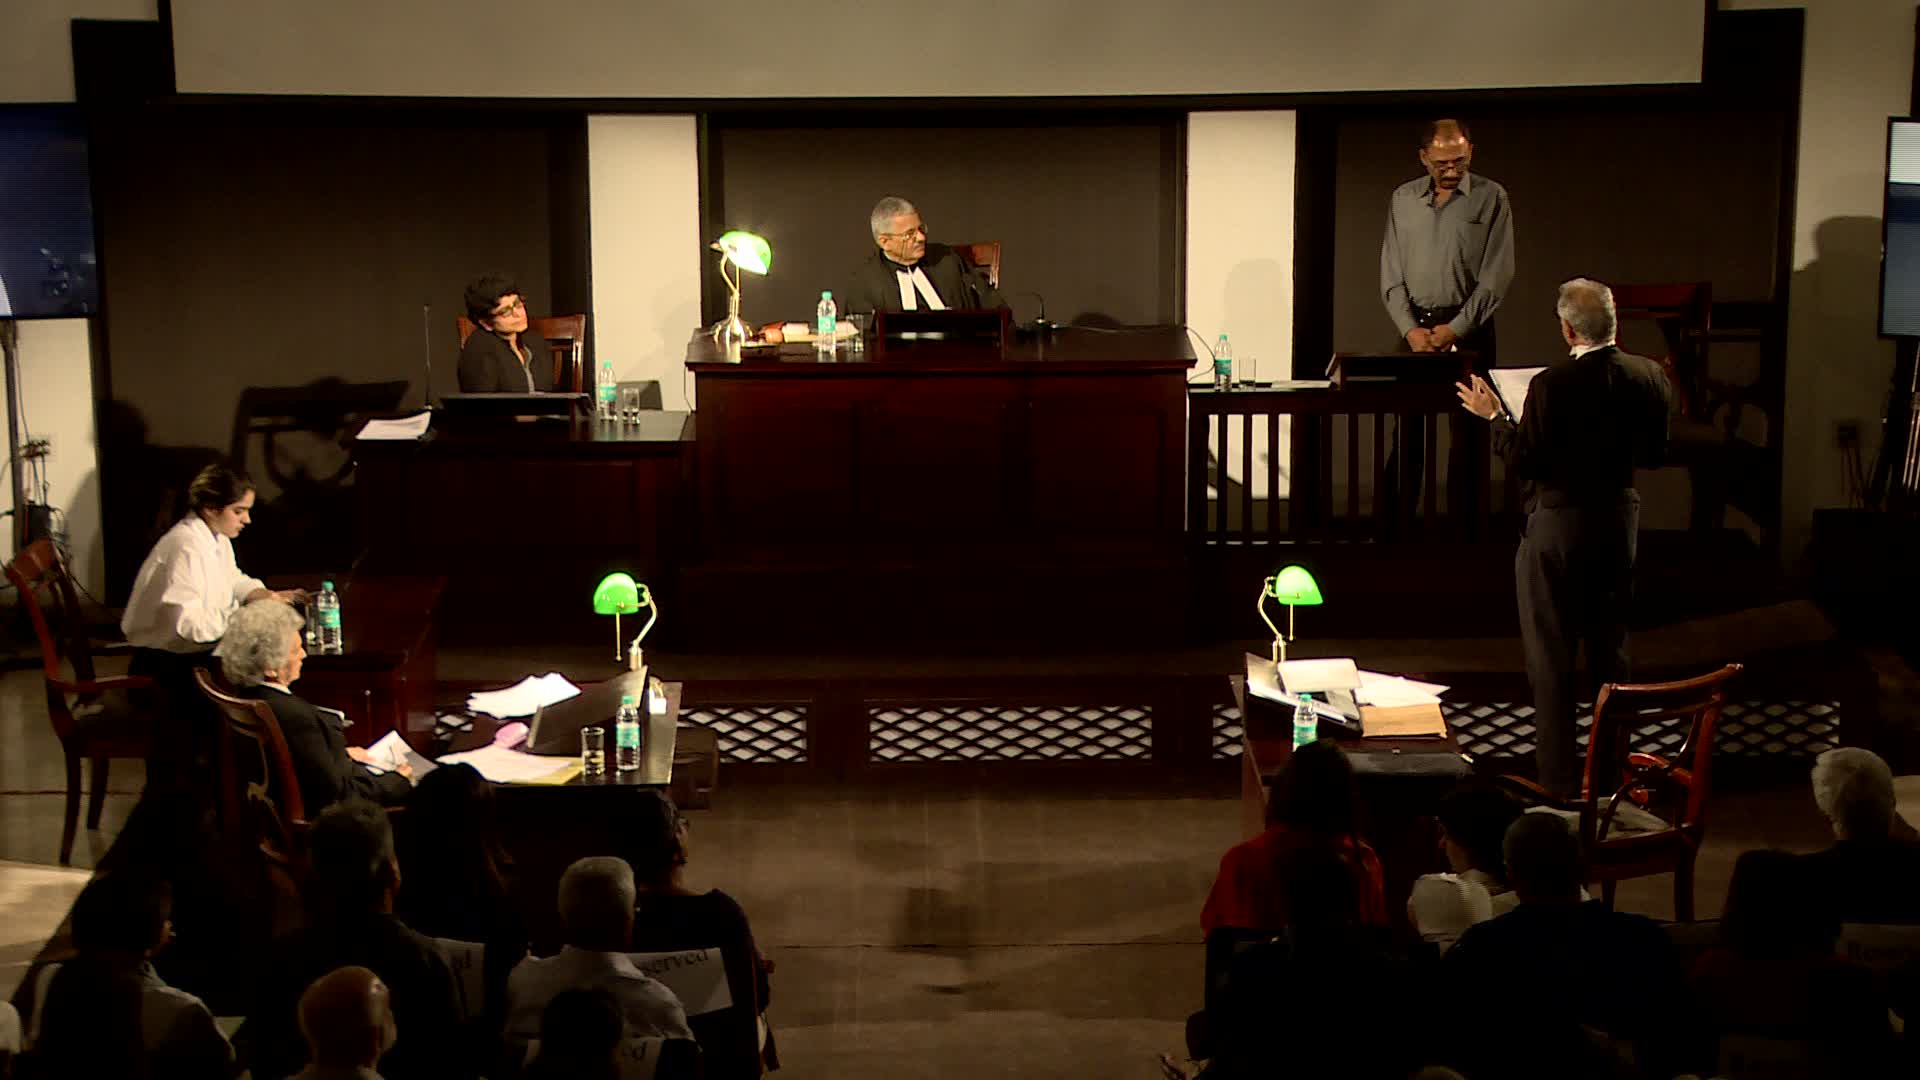 Art as Evidence in Court Rooms